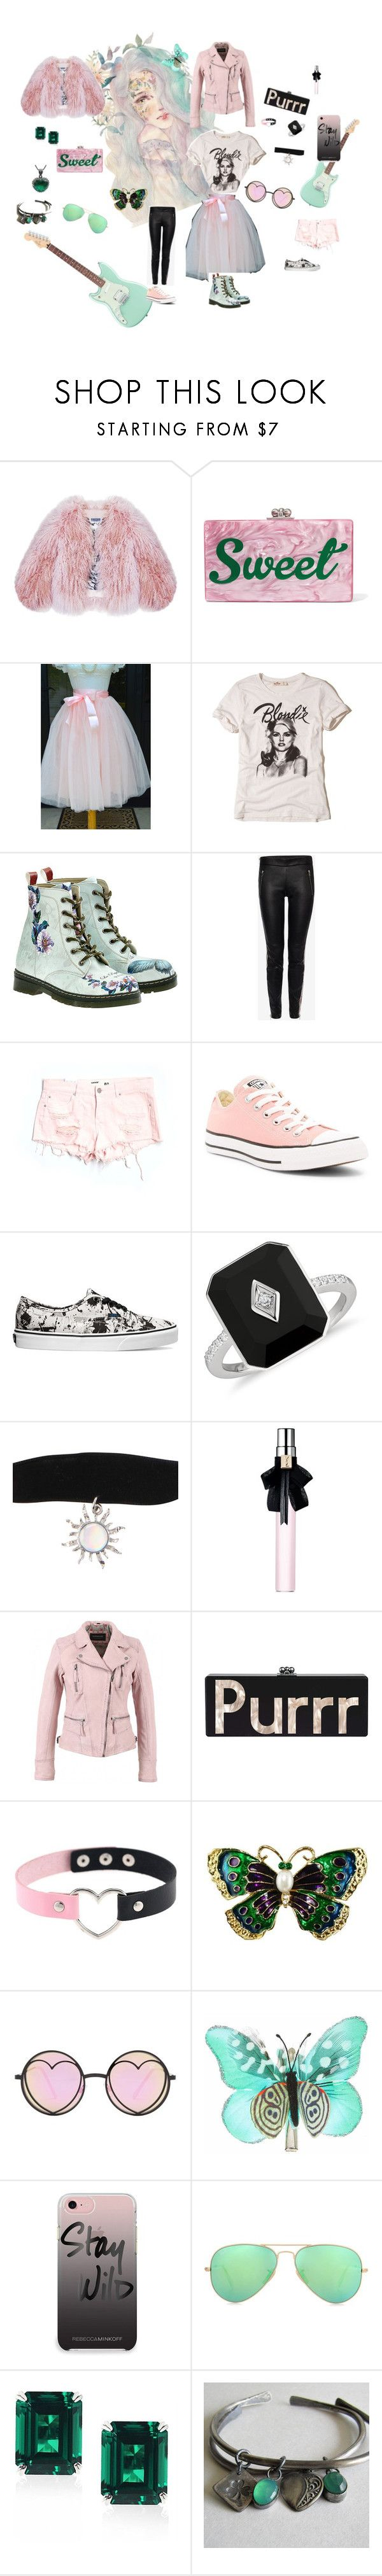 """If you cannot be the poet , Be the poem ."" by storme1369 ❤ liked on Polyvore featuring Florence Bridge, Edie Parker, Hollister Co., Alexander McQueen, Garage, Converse, Vans, Yves Saint Laurent, Betsey Johnson and Rebecca Minkoff"